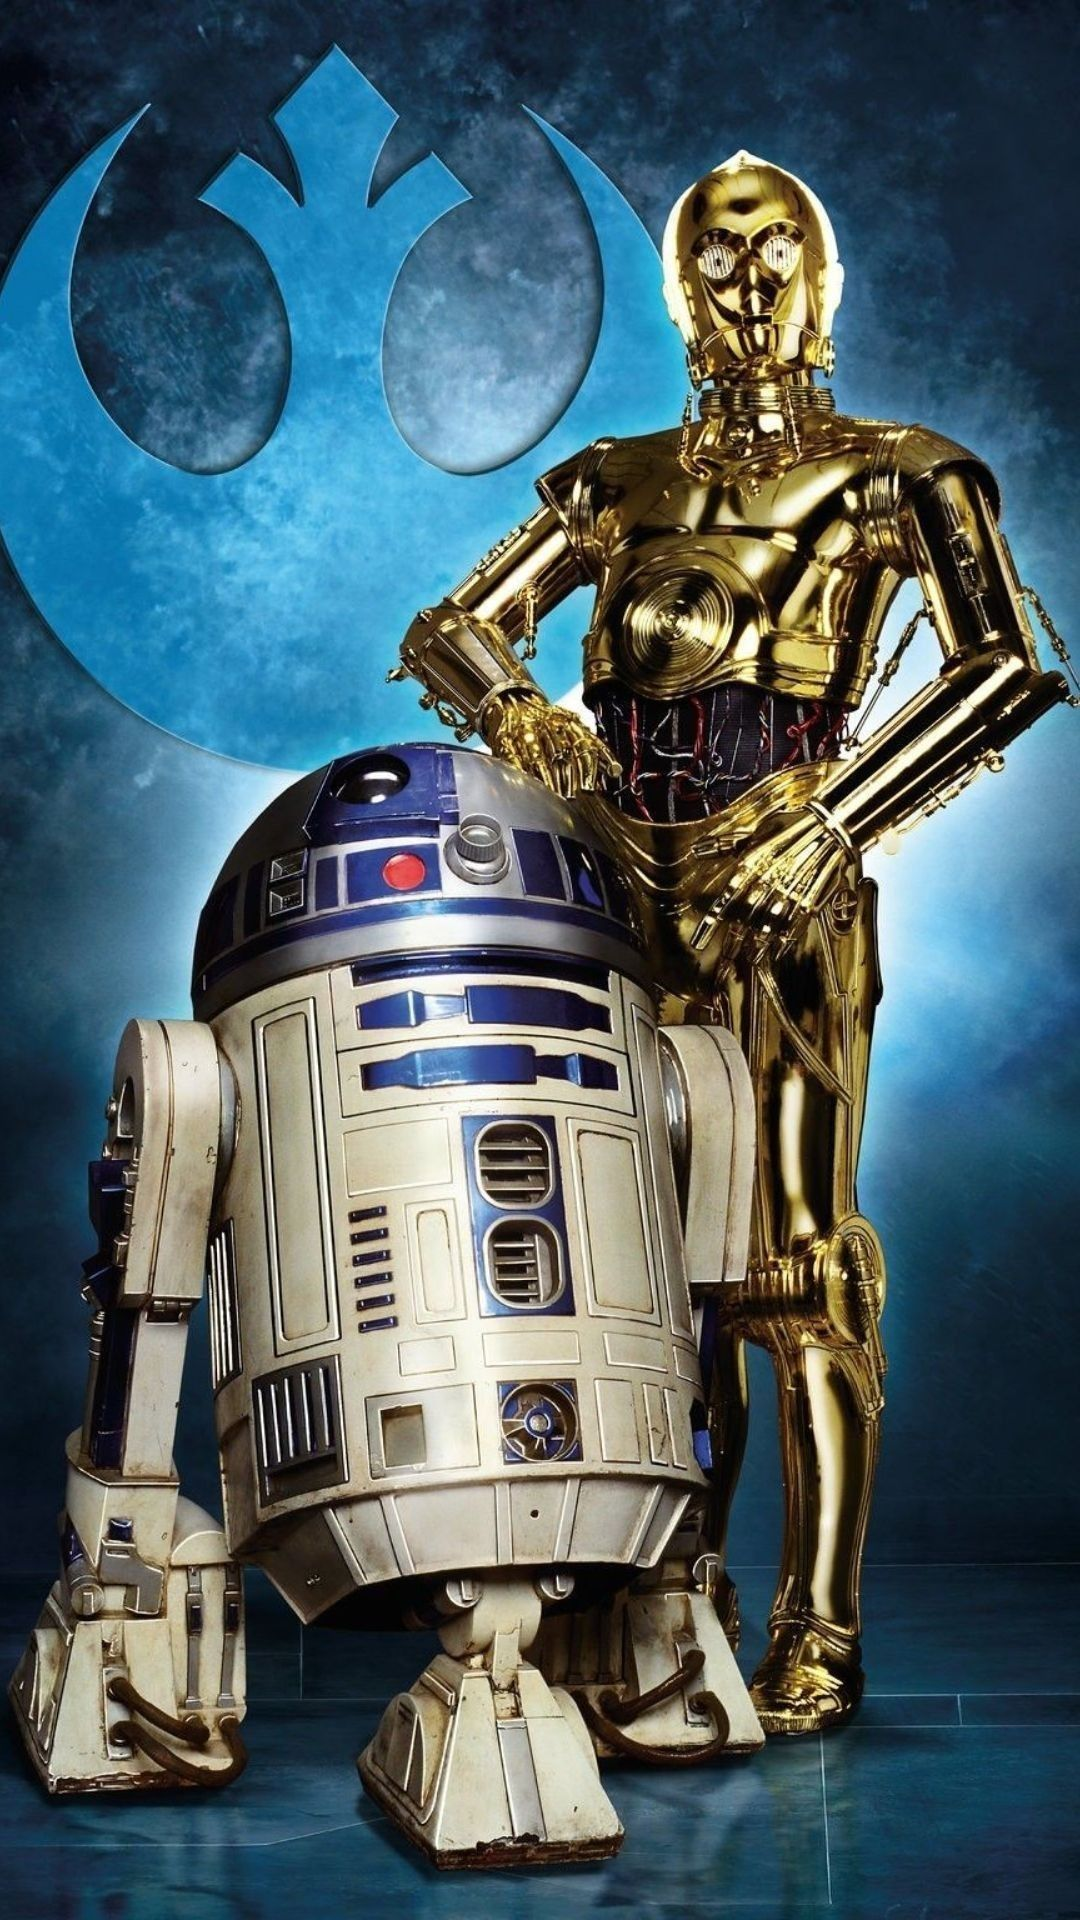 star wars r2 d2 and c 3po star wars krieg der sterne. Black Bedroom Furniture Sets. Home Design Ideas